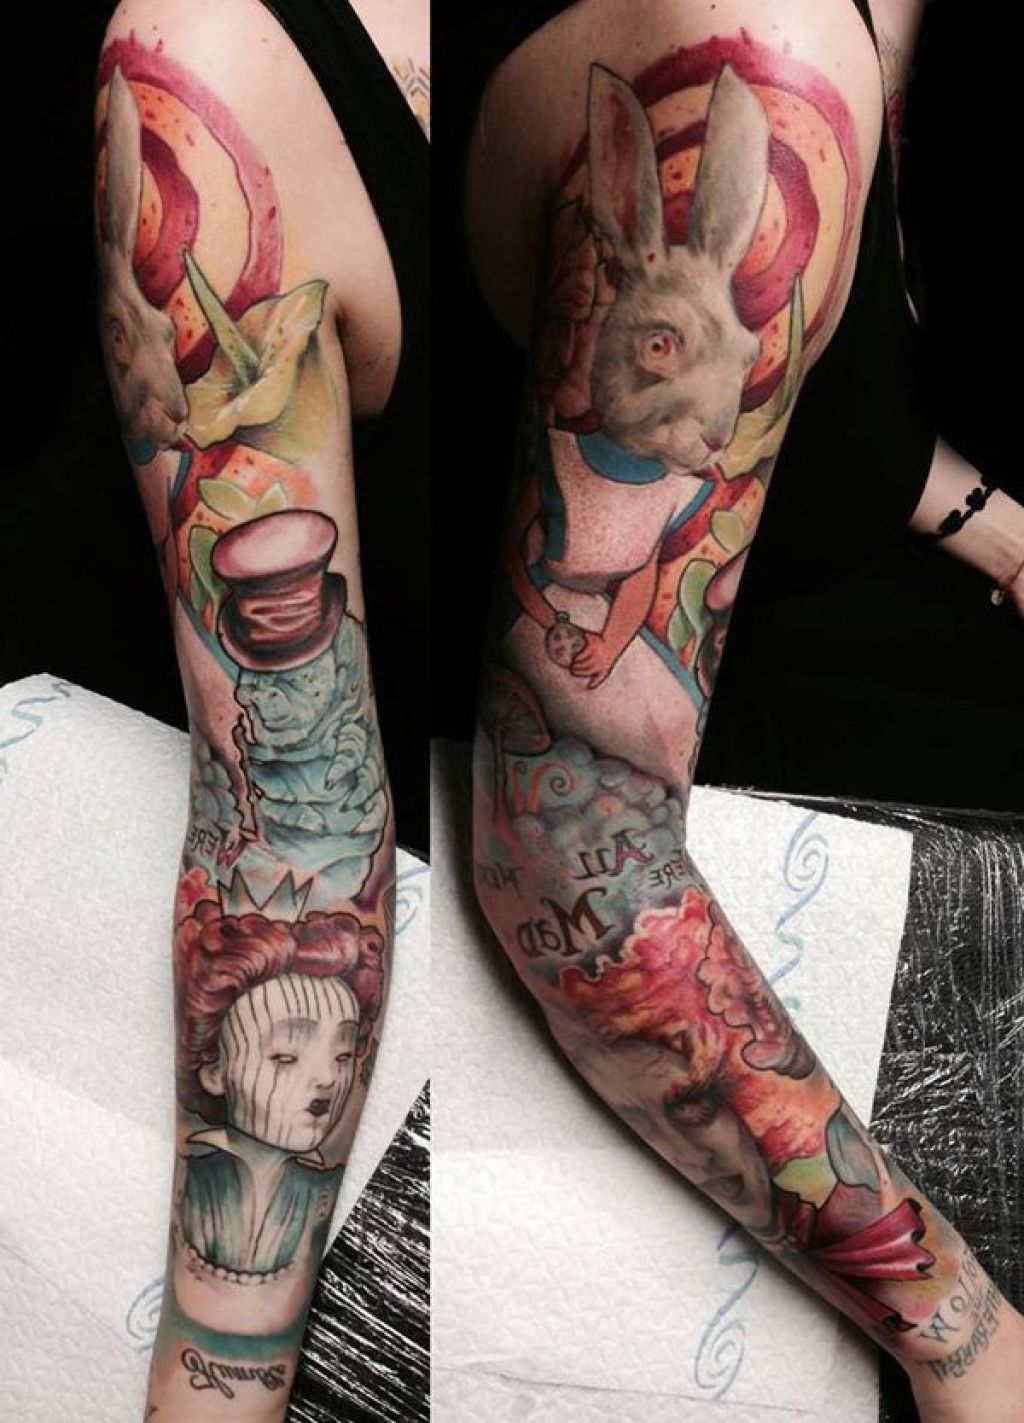 Alice in wonderland with tattoos and piercings